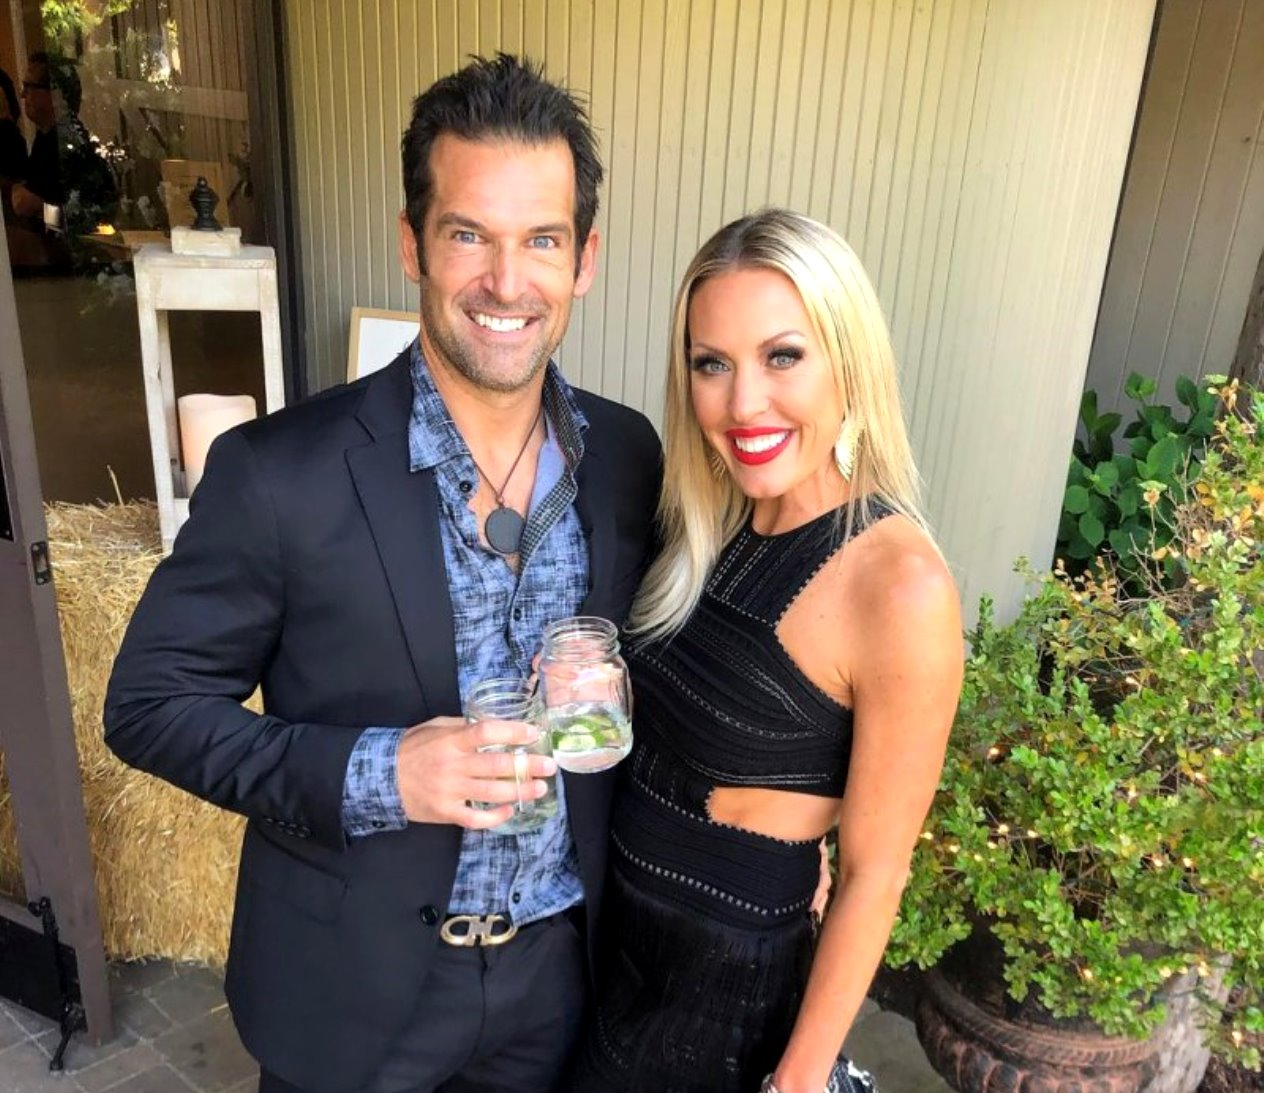 """RHOC: Braunwyn Windham-Burke Cries Over Backlash For Physically Abusing Husband Sean Burke as She Says It's """"Much Worse"""" Than She Expected, Plus Sean Addresses the Abuse"""